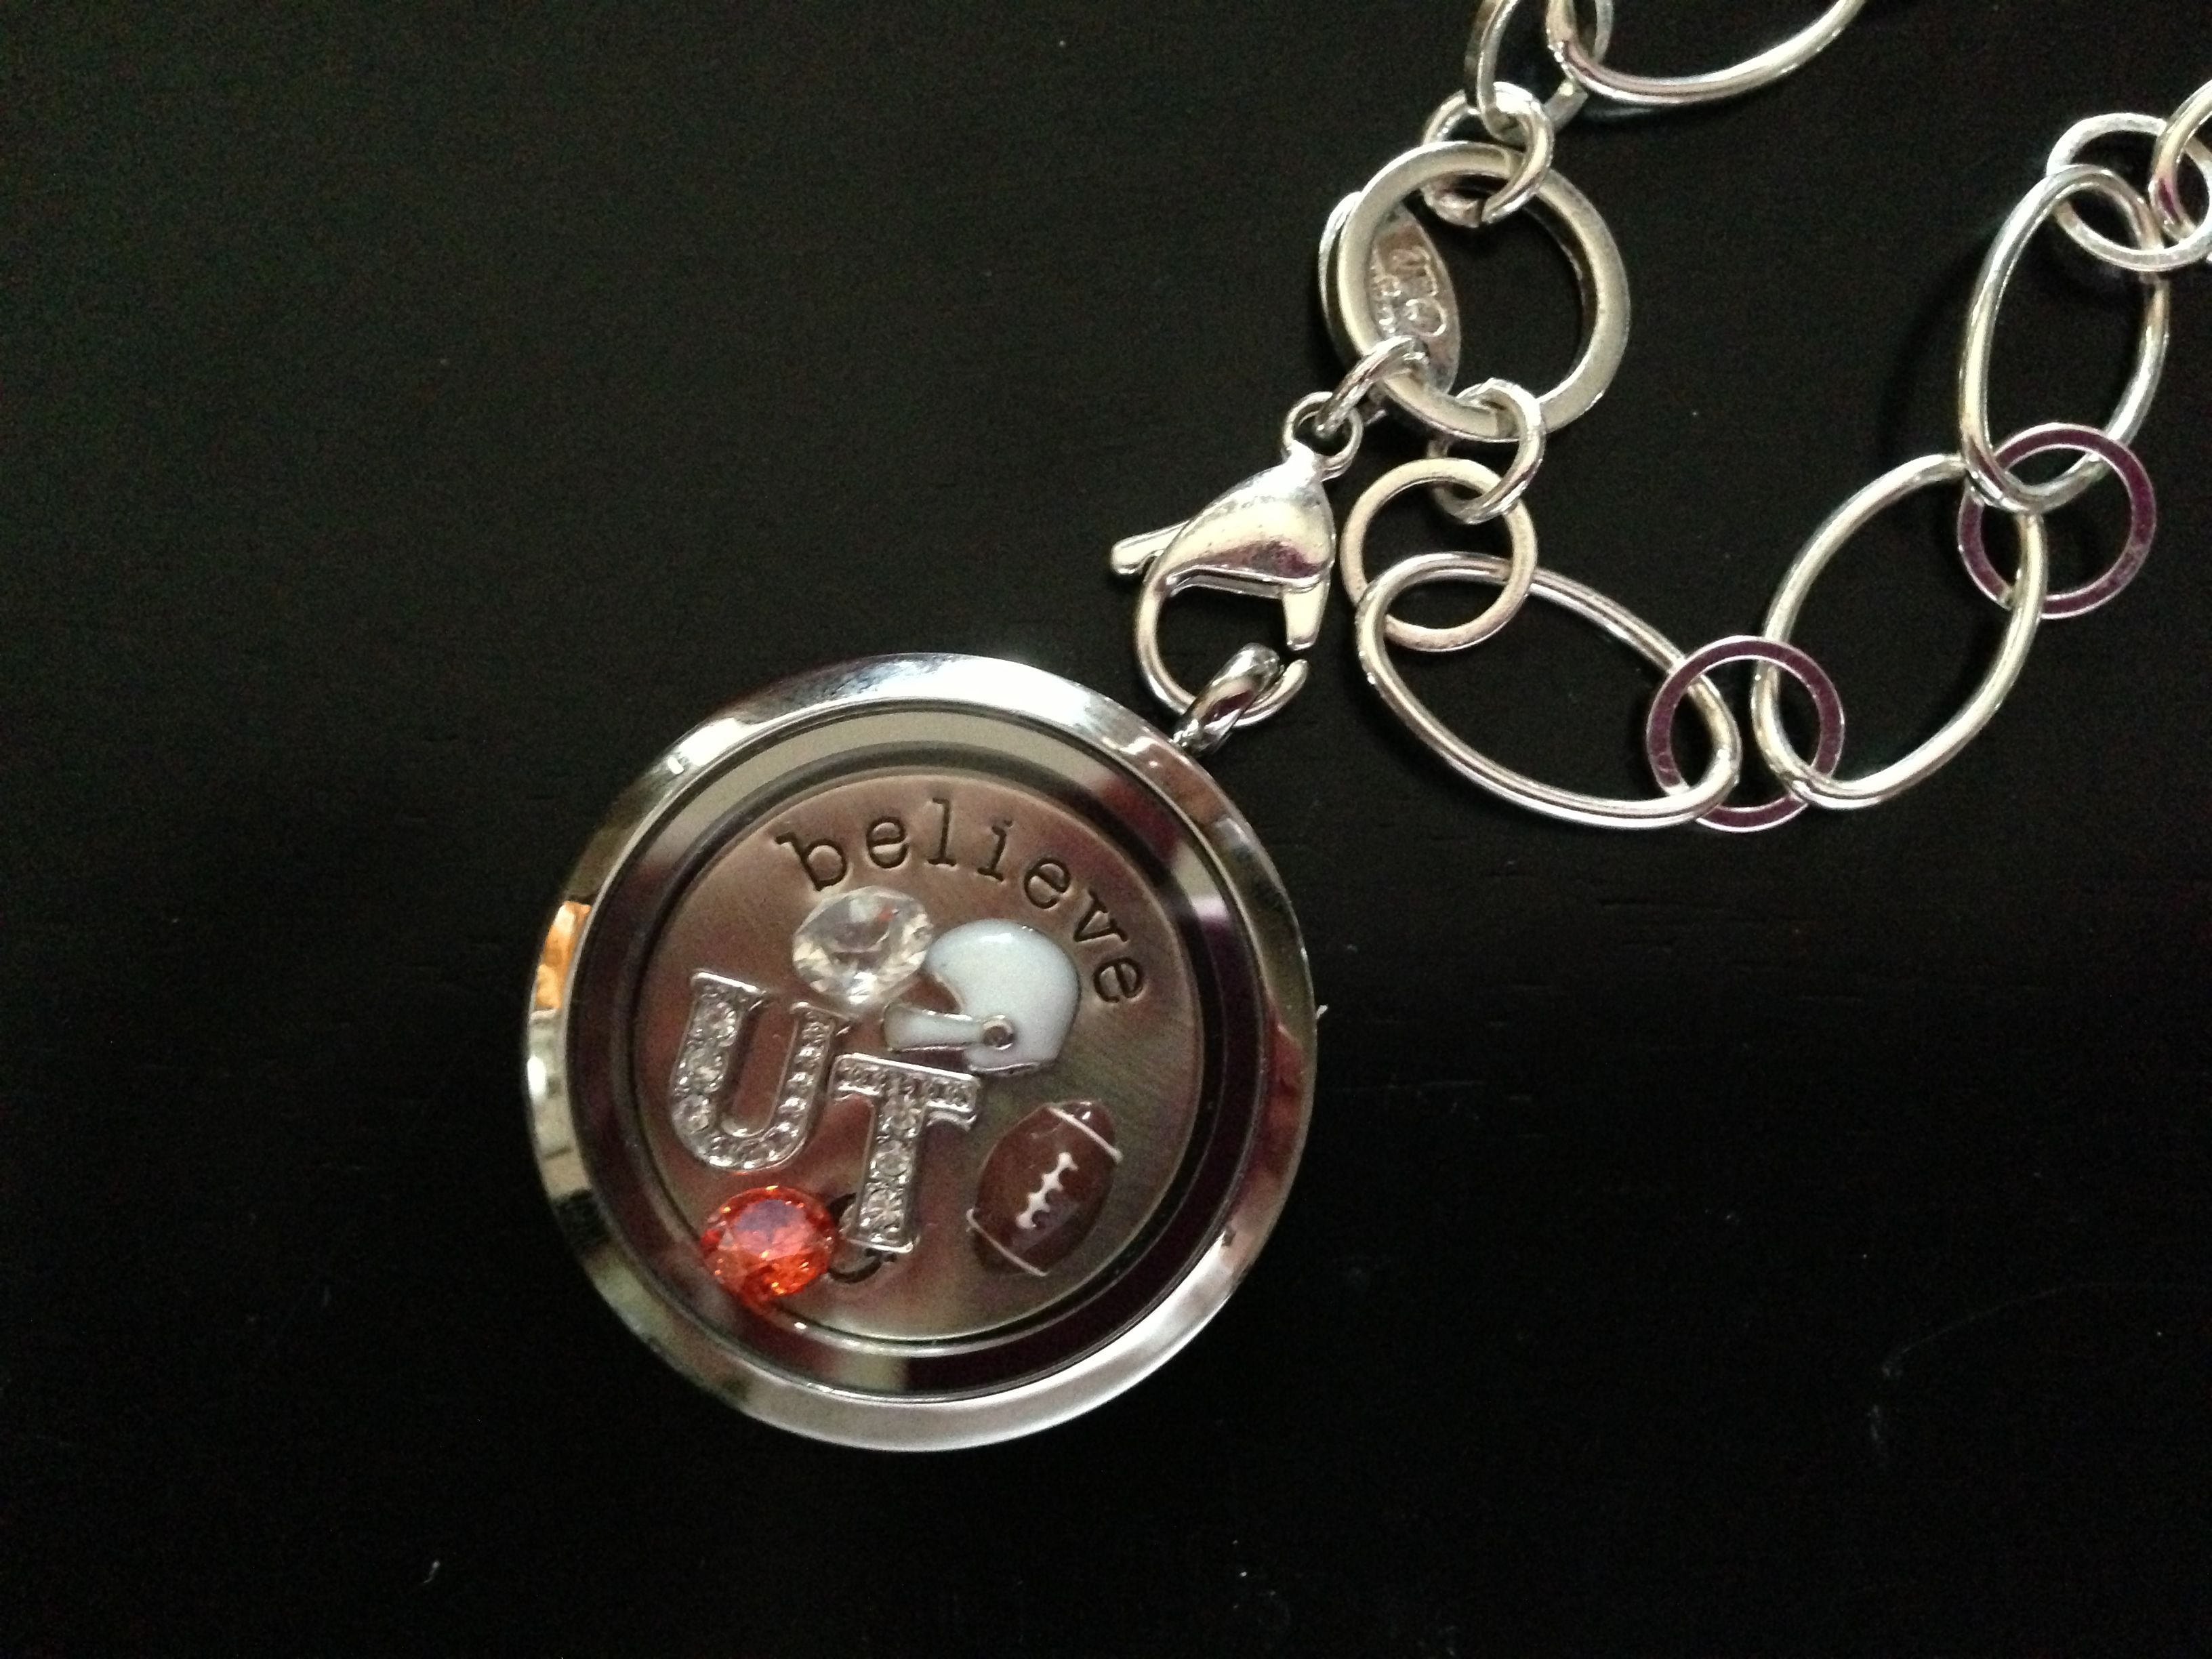 TN football fans!! Get yours in time for football season! sherrydavis.origamiowl.com Facebook.com/sherryslocketsncharms Mentor #27212